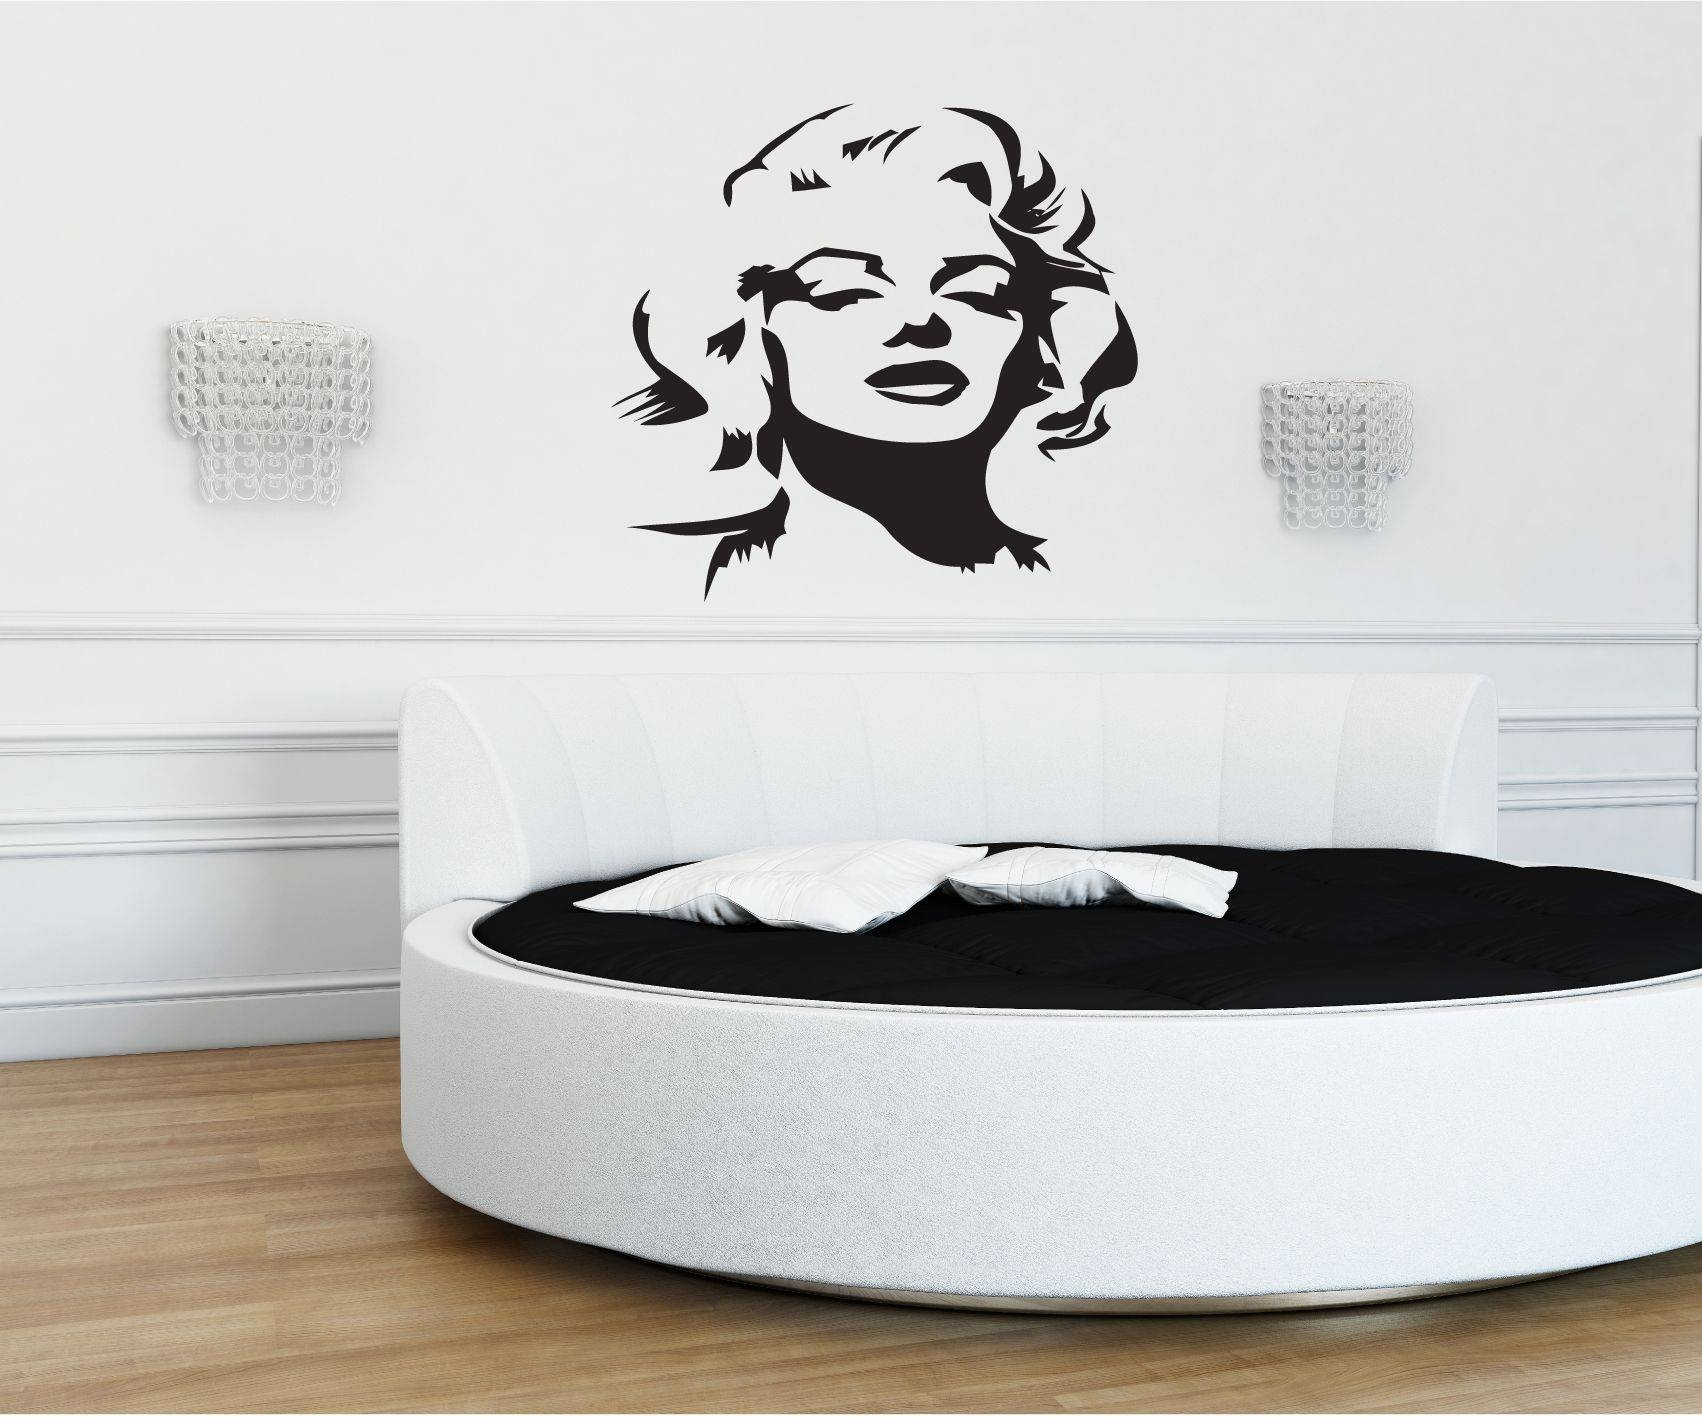 Marilyn Monroe Wall Decor Quotes : Marilyn Monroe Wall Decor Ideas Pertaining To Latest Marilyn Monroe Wall Art Quotes (View 13 of 25)